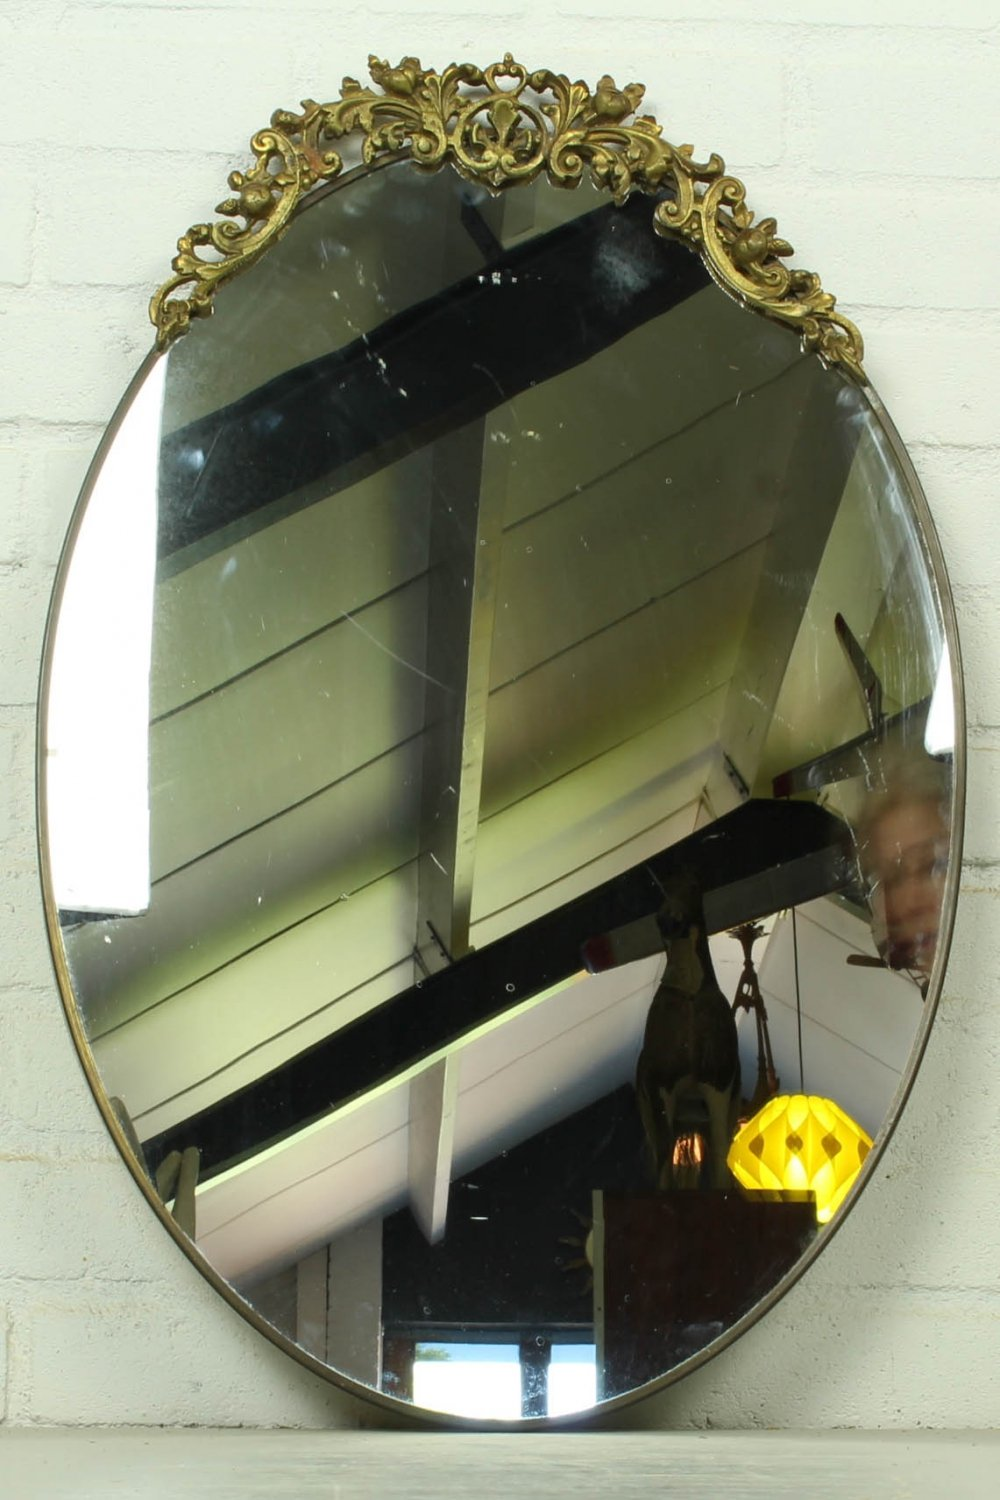 Antique oval wall mirror in brass frame with top ornament